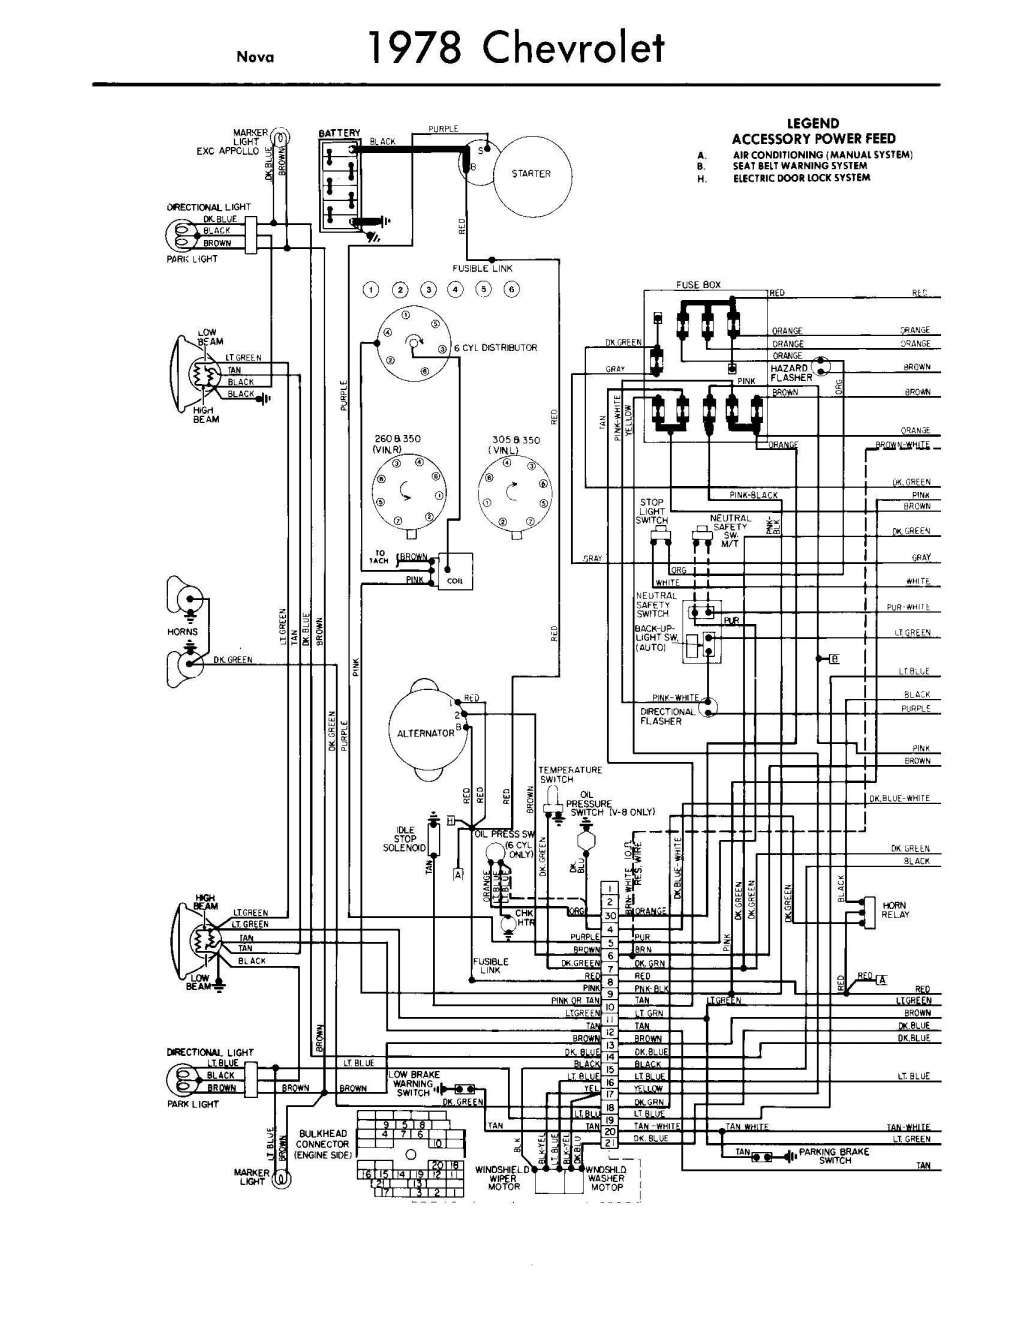 16 78 Chevy Truck Wiring Diagram Chevy Trucks 1979 Chevy Truck 1985 Chevy Truck